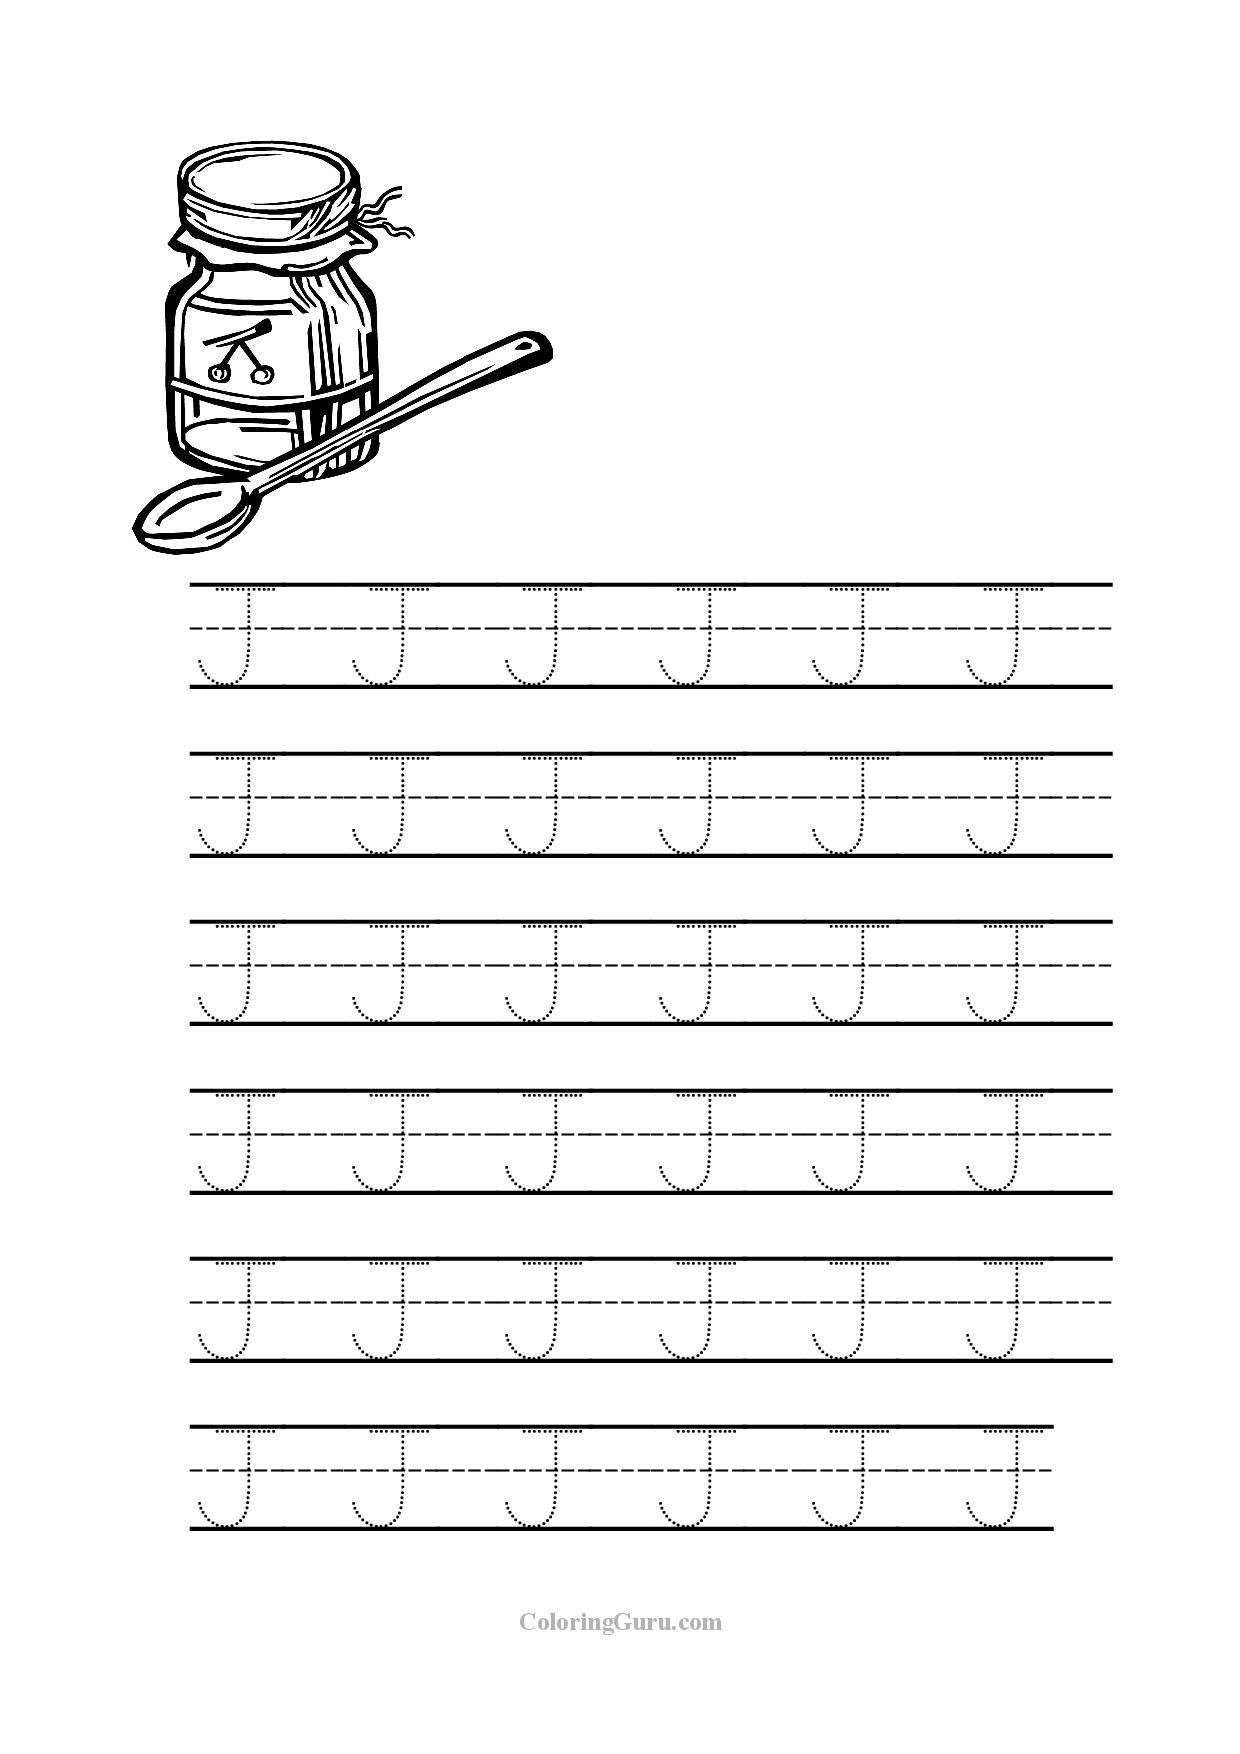 Free Printable Tracing Letter J Worksheets For Preschool inside Letter J Worksheets Free Printables